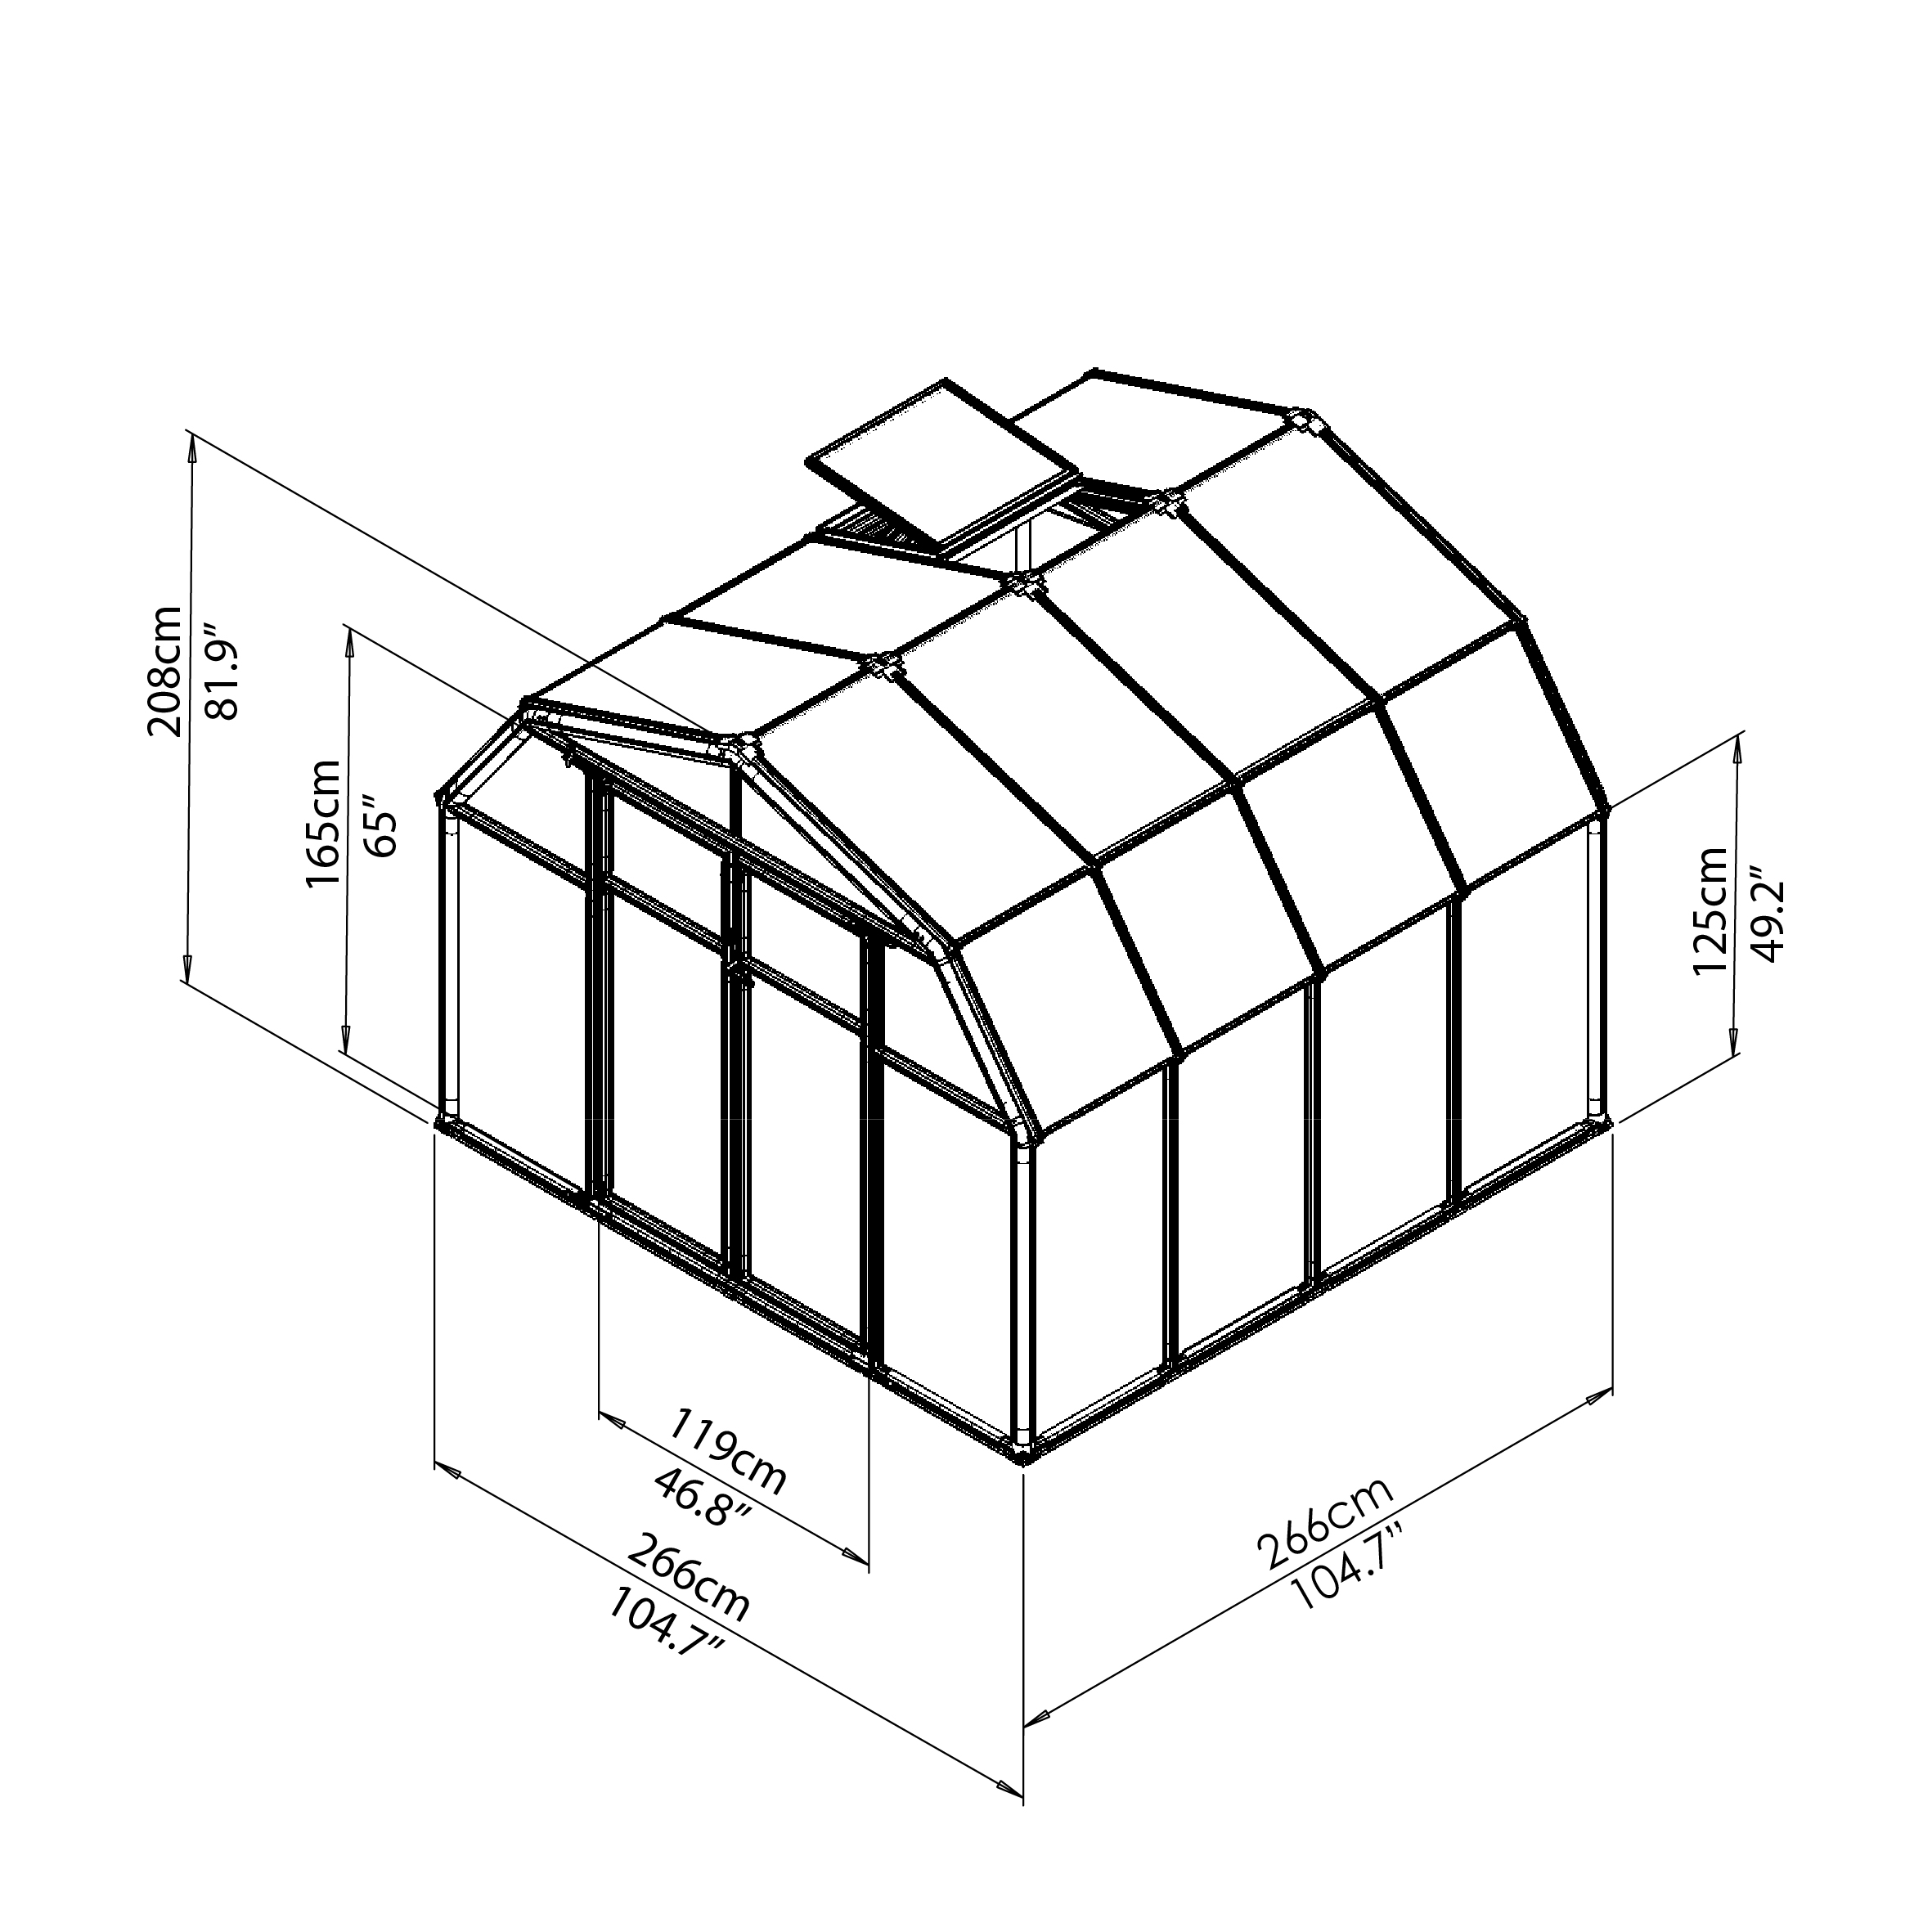 rion-greenhouses-hobbygardener-8x8-drawing-isoview.jpg